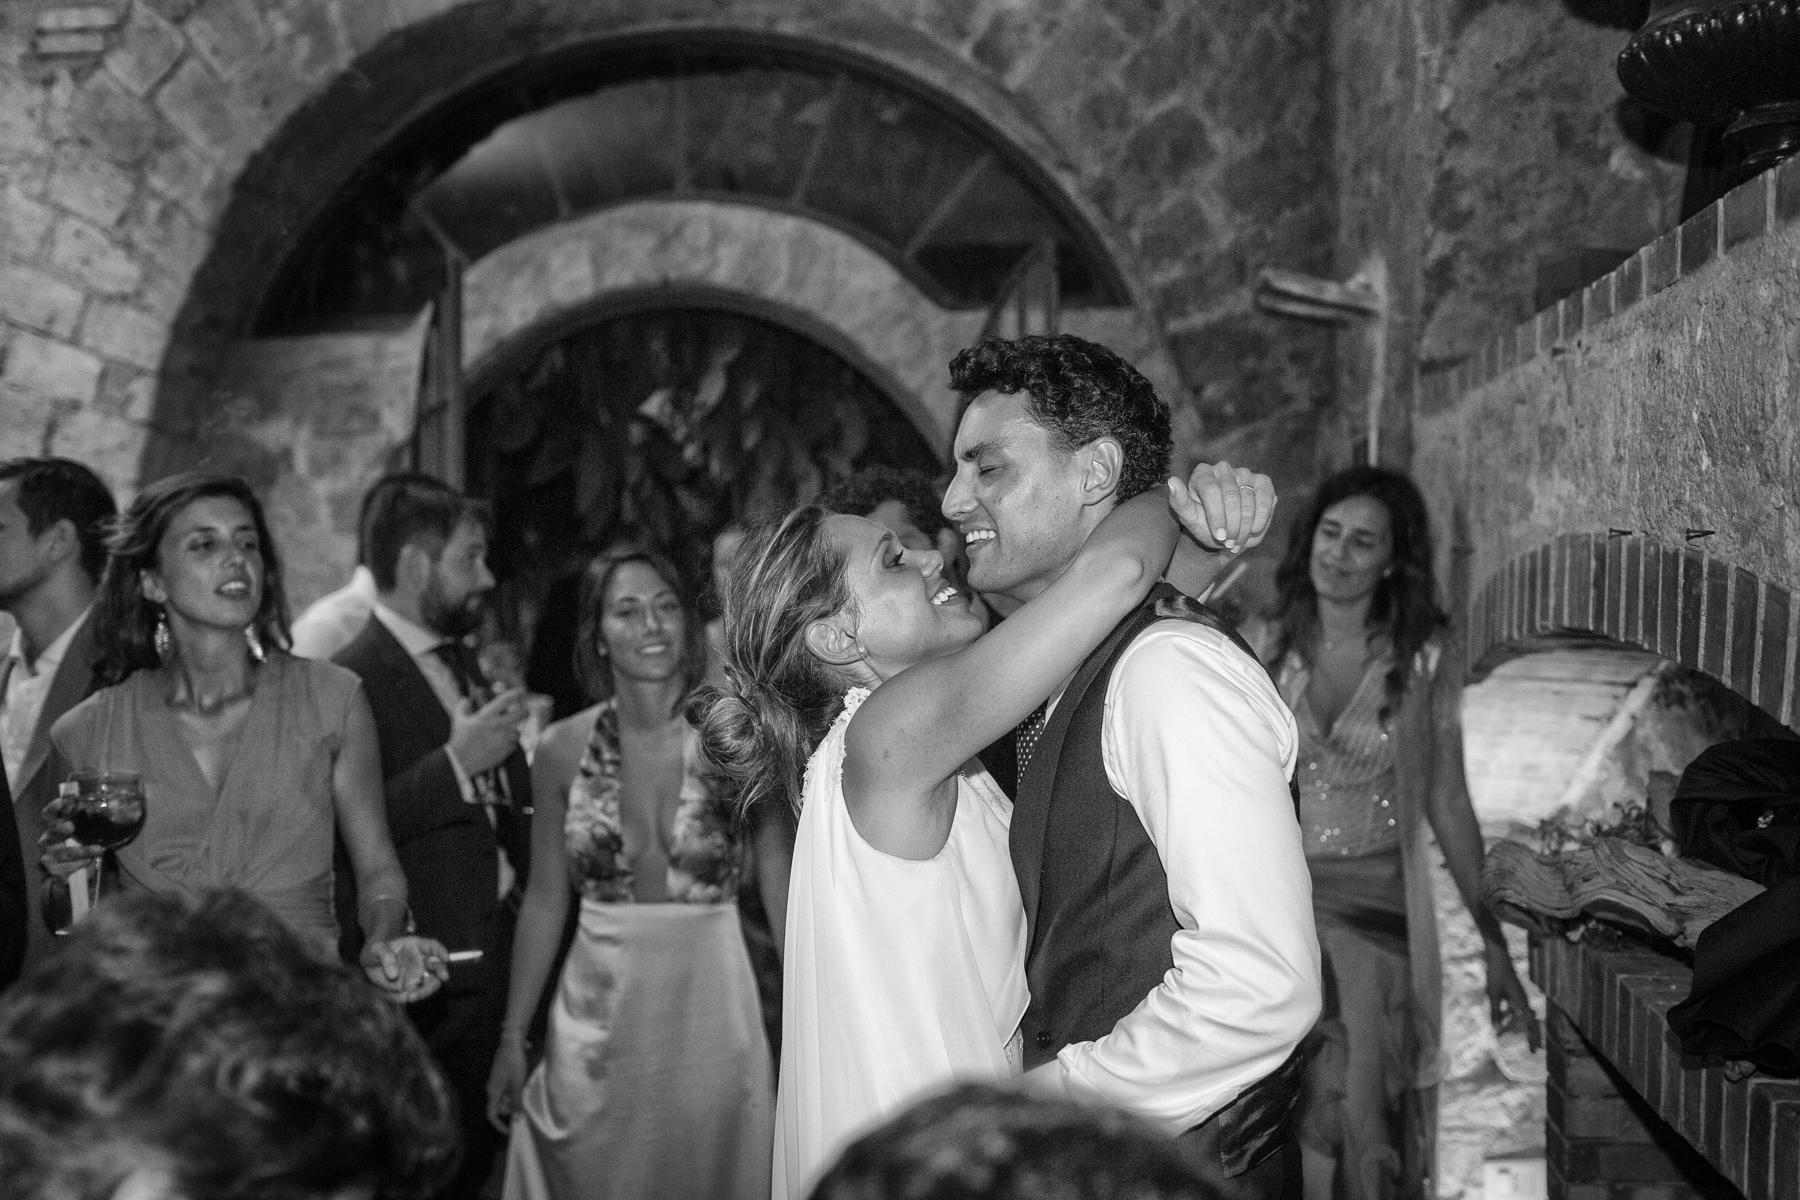 0251-_MG_0159-Modificafotografo-matrimonio-napoli-scattidamore